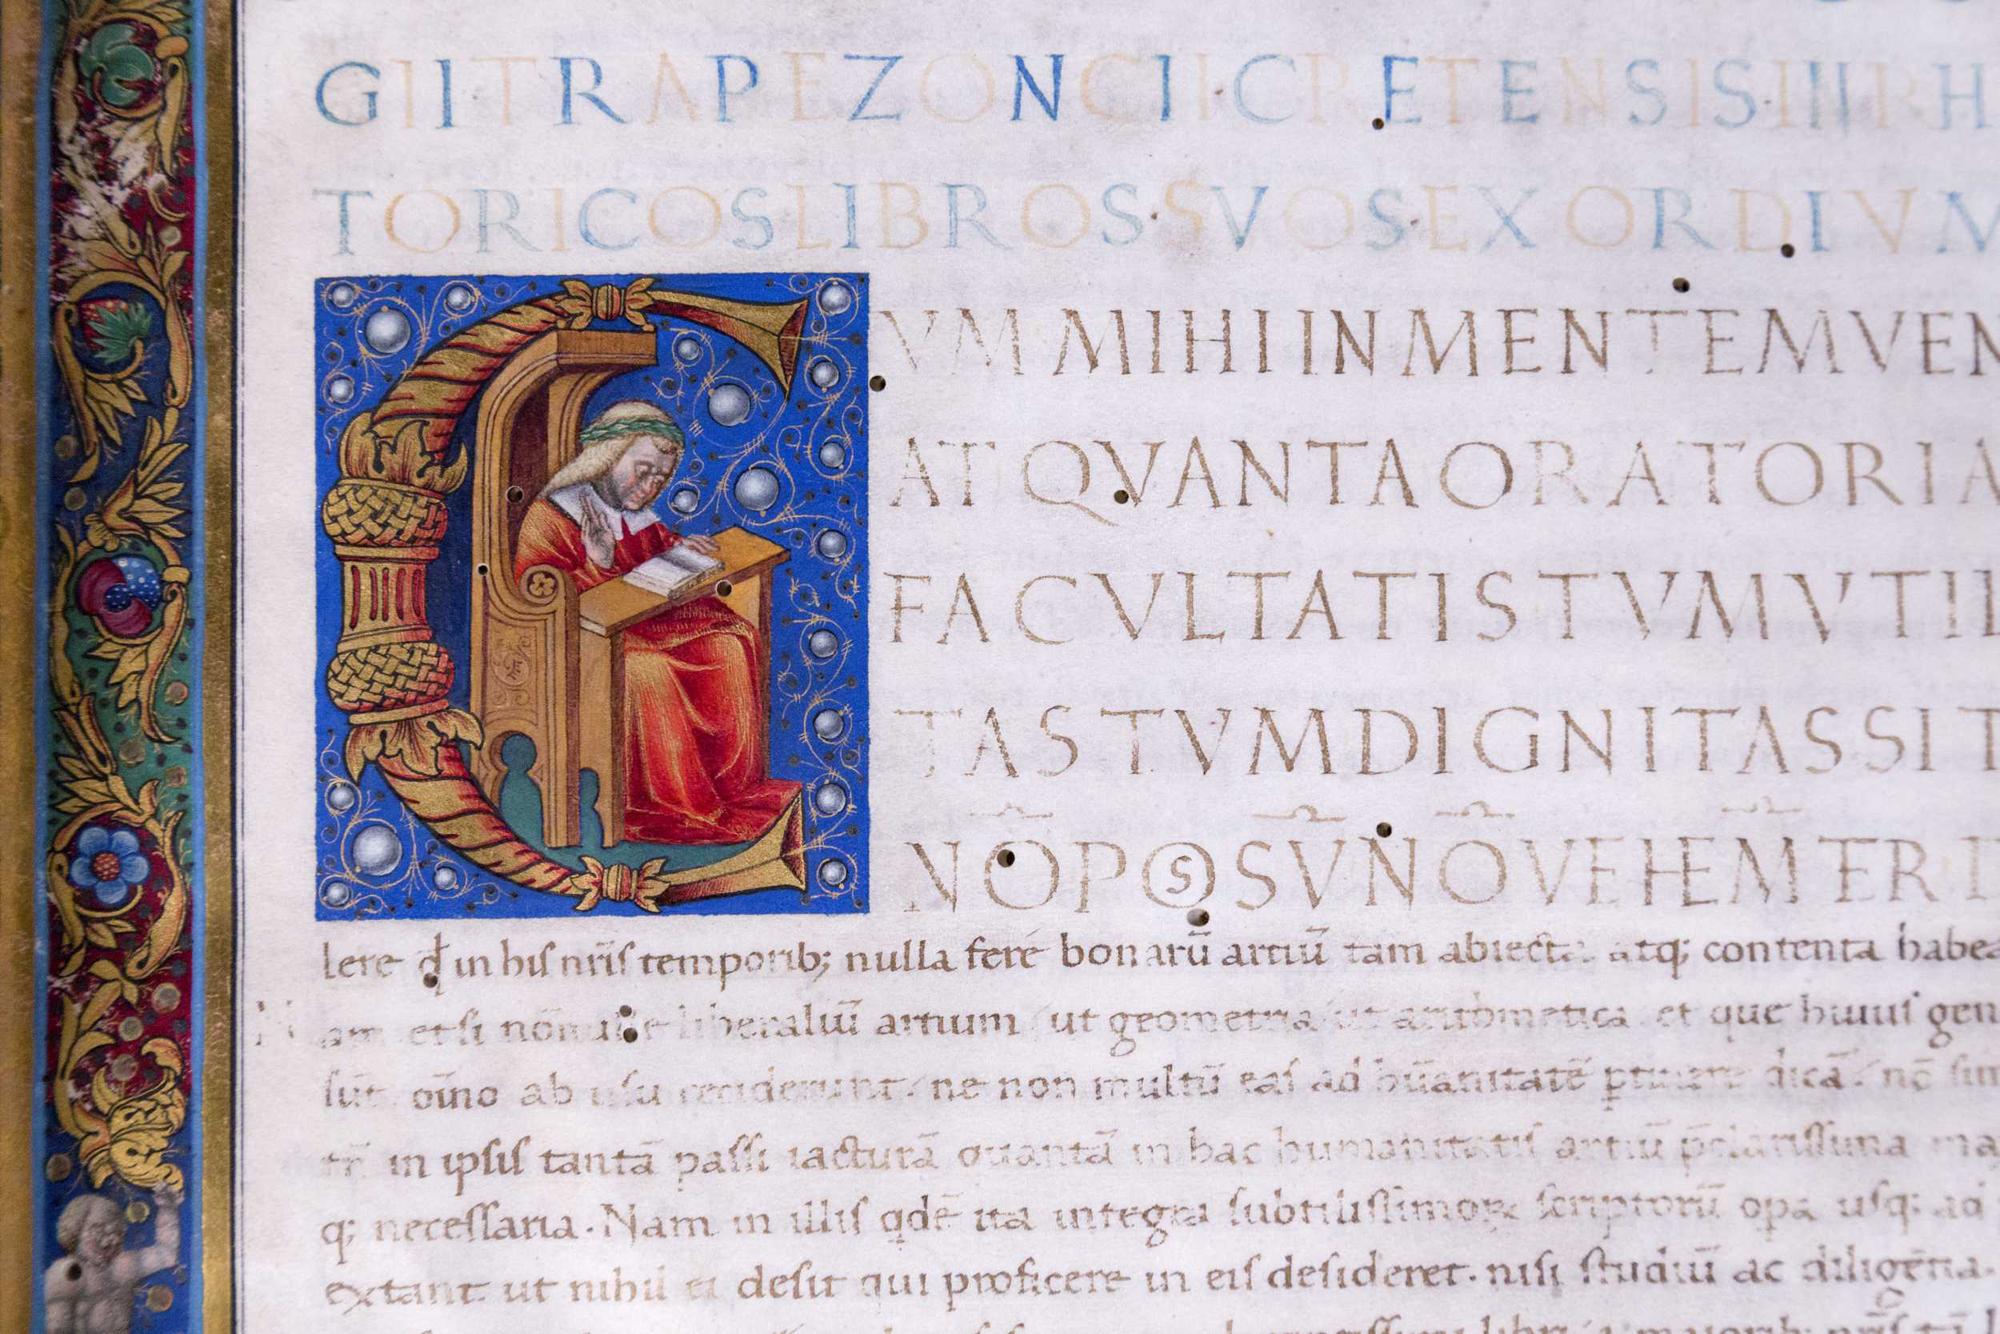 The corvina including Rhetorica by Byzantine humanist Georgius Trapezuntius was illuminated by Francesco Castello of Lombardy. Budapest, NSZL, OSZK Cod. Lat. 281., f. 1r, detail